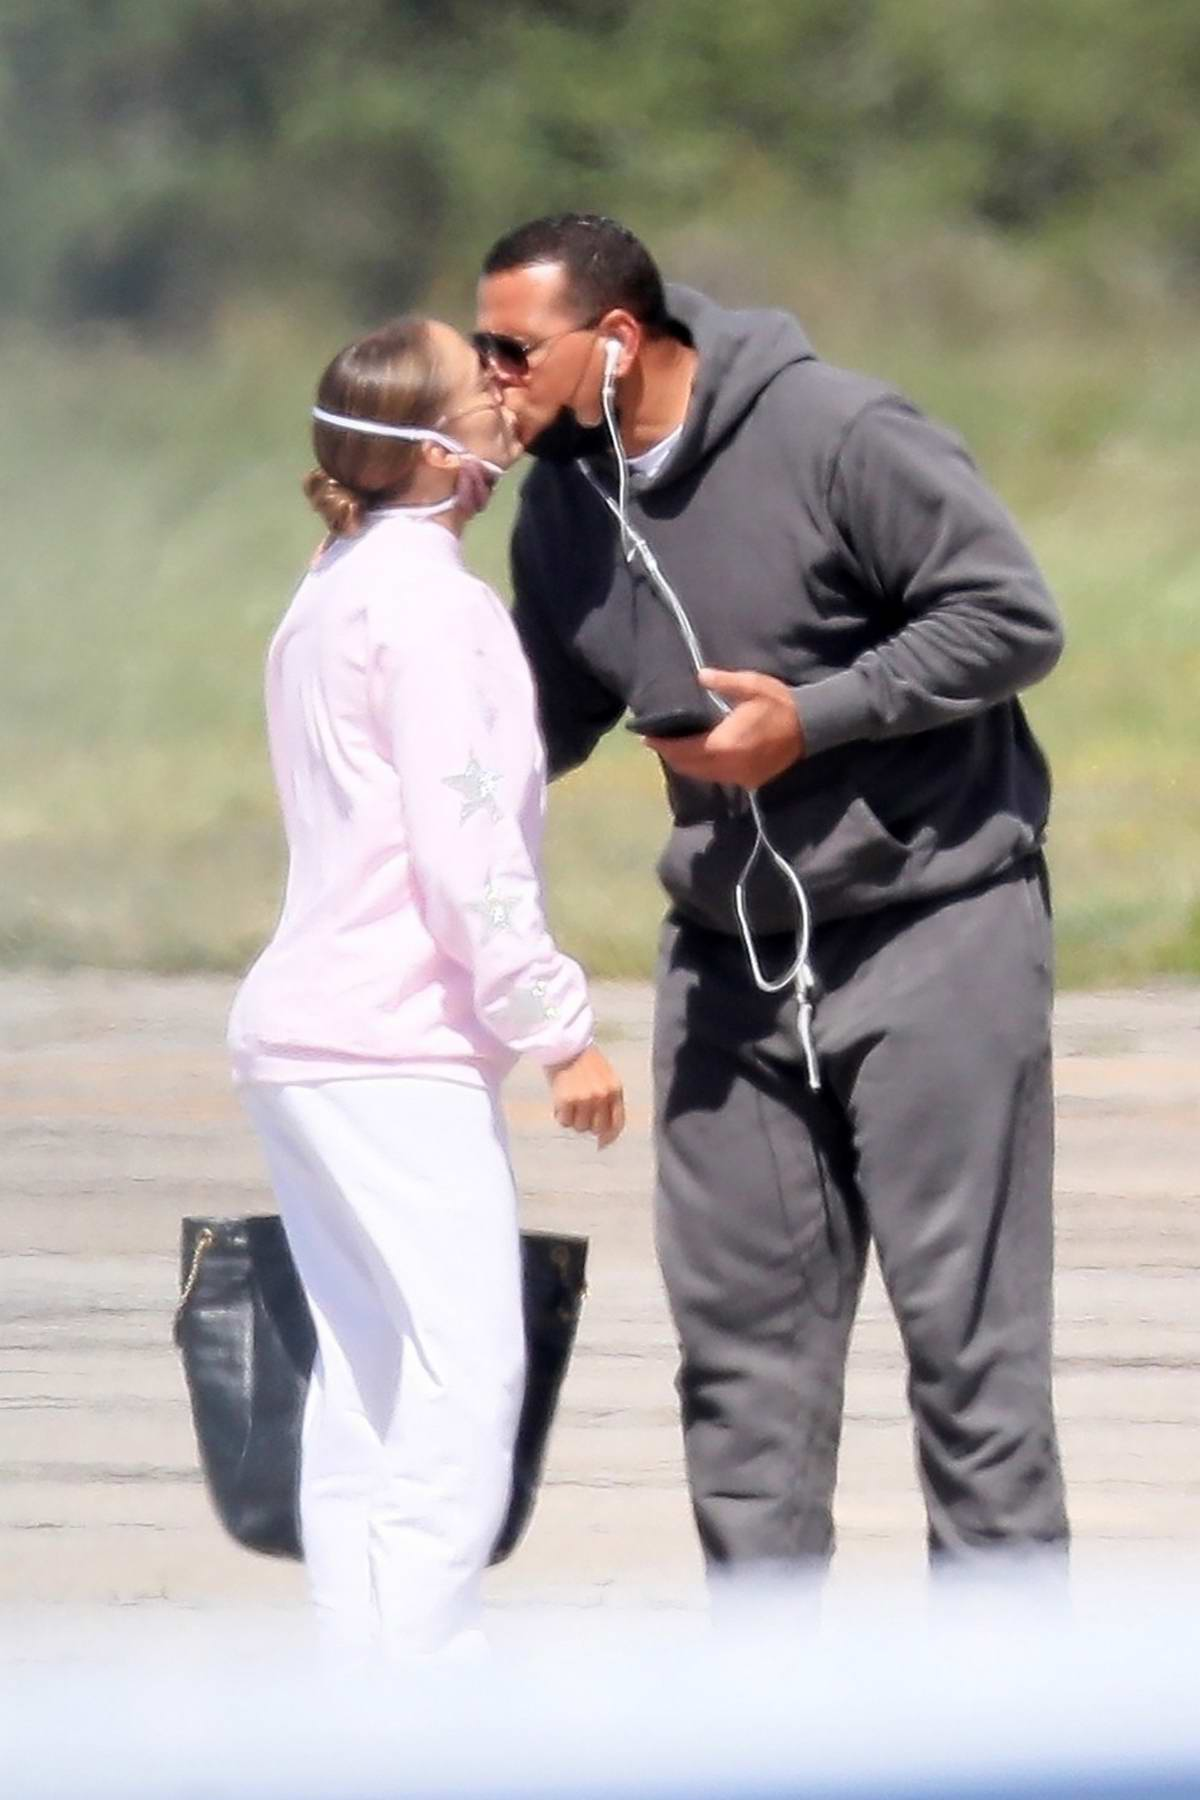 Jennifer Lopez and Alex Rodriguez share a kiss at a private airport while leaving the Hamptons, New York